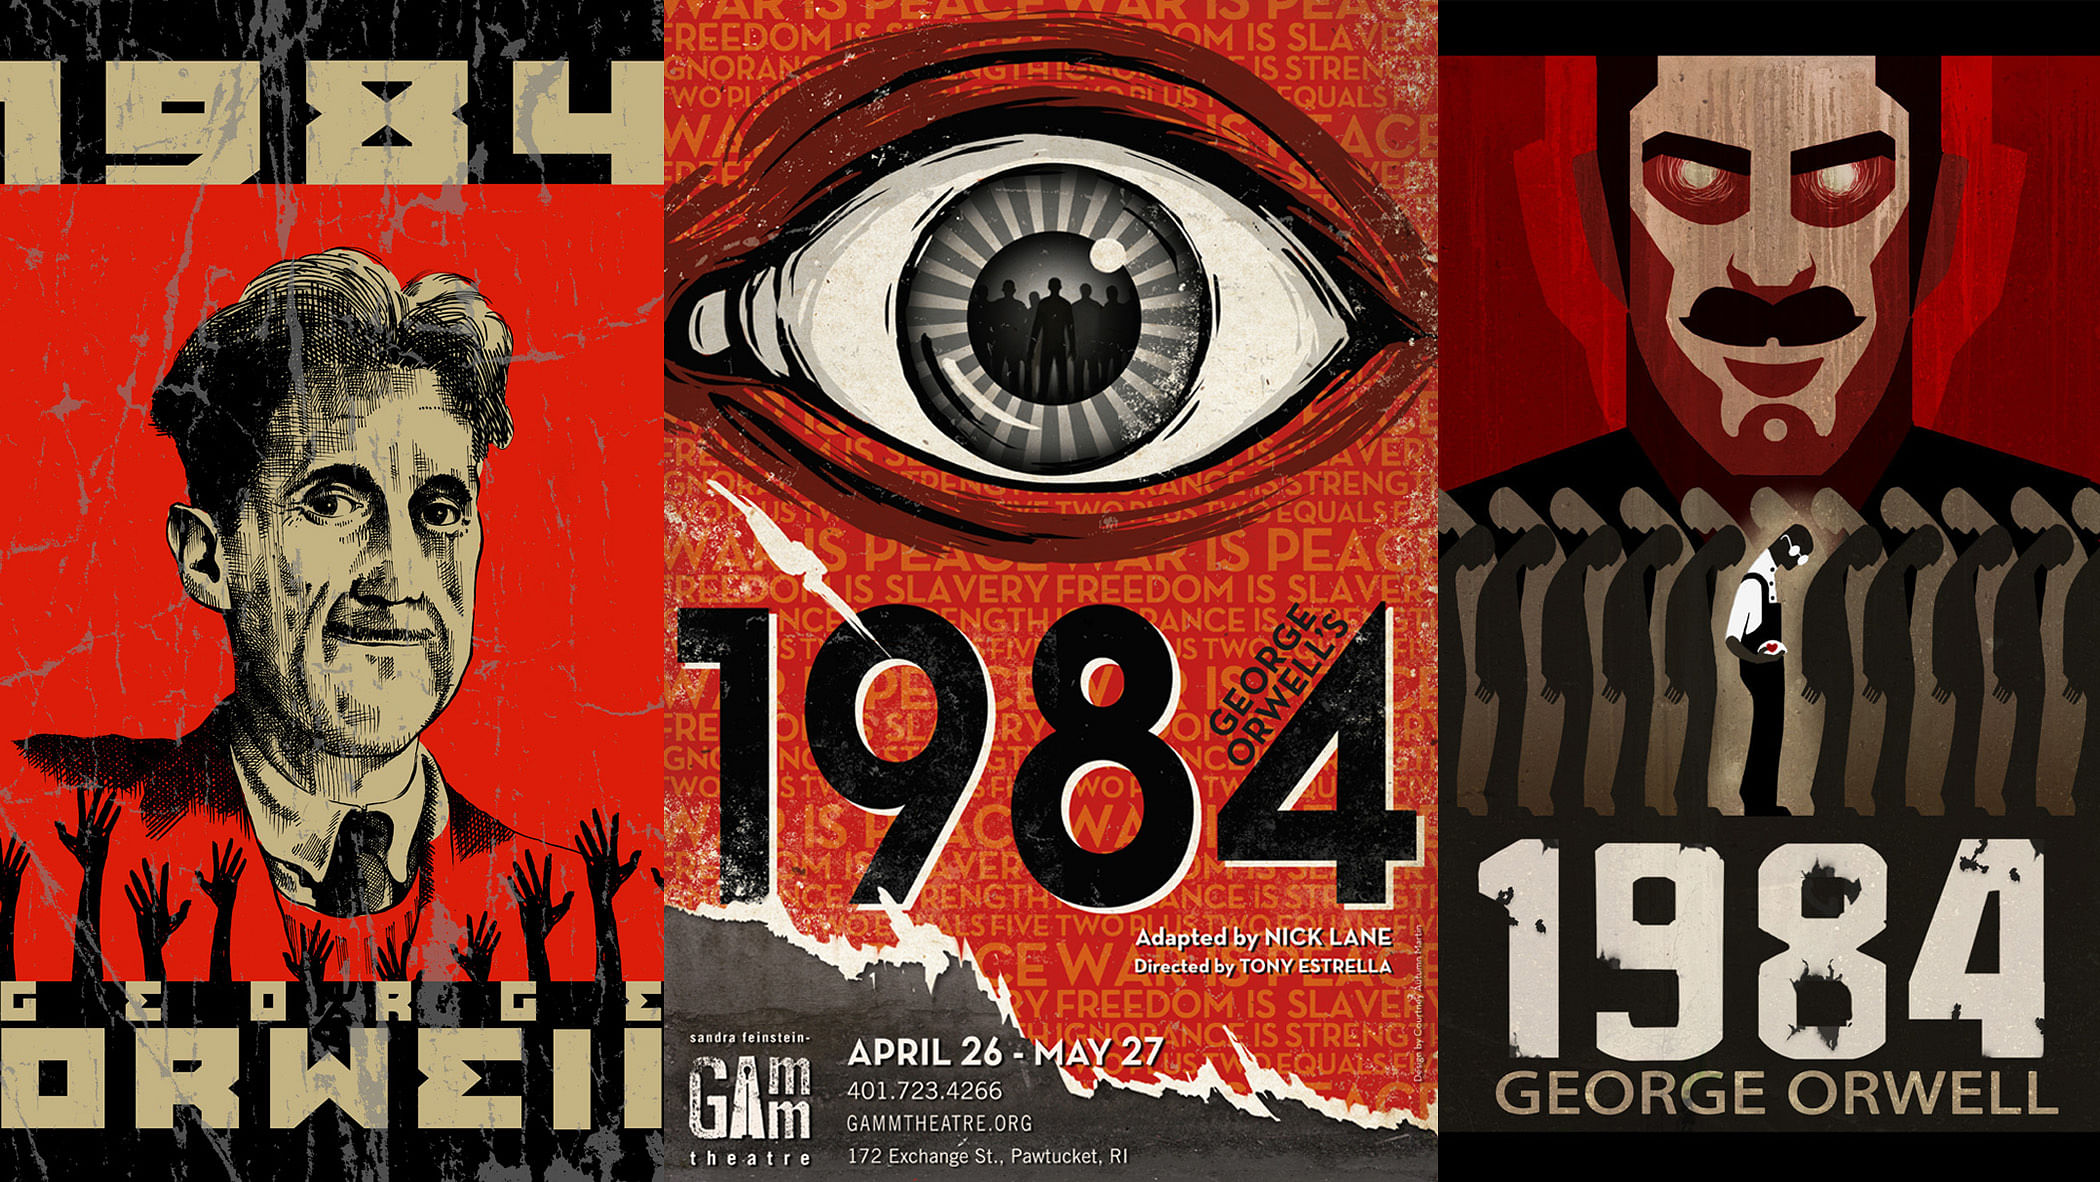 All-Knowing State: 2015 Isn't Very Different from Orwell's 1984